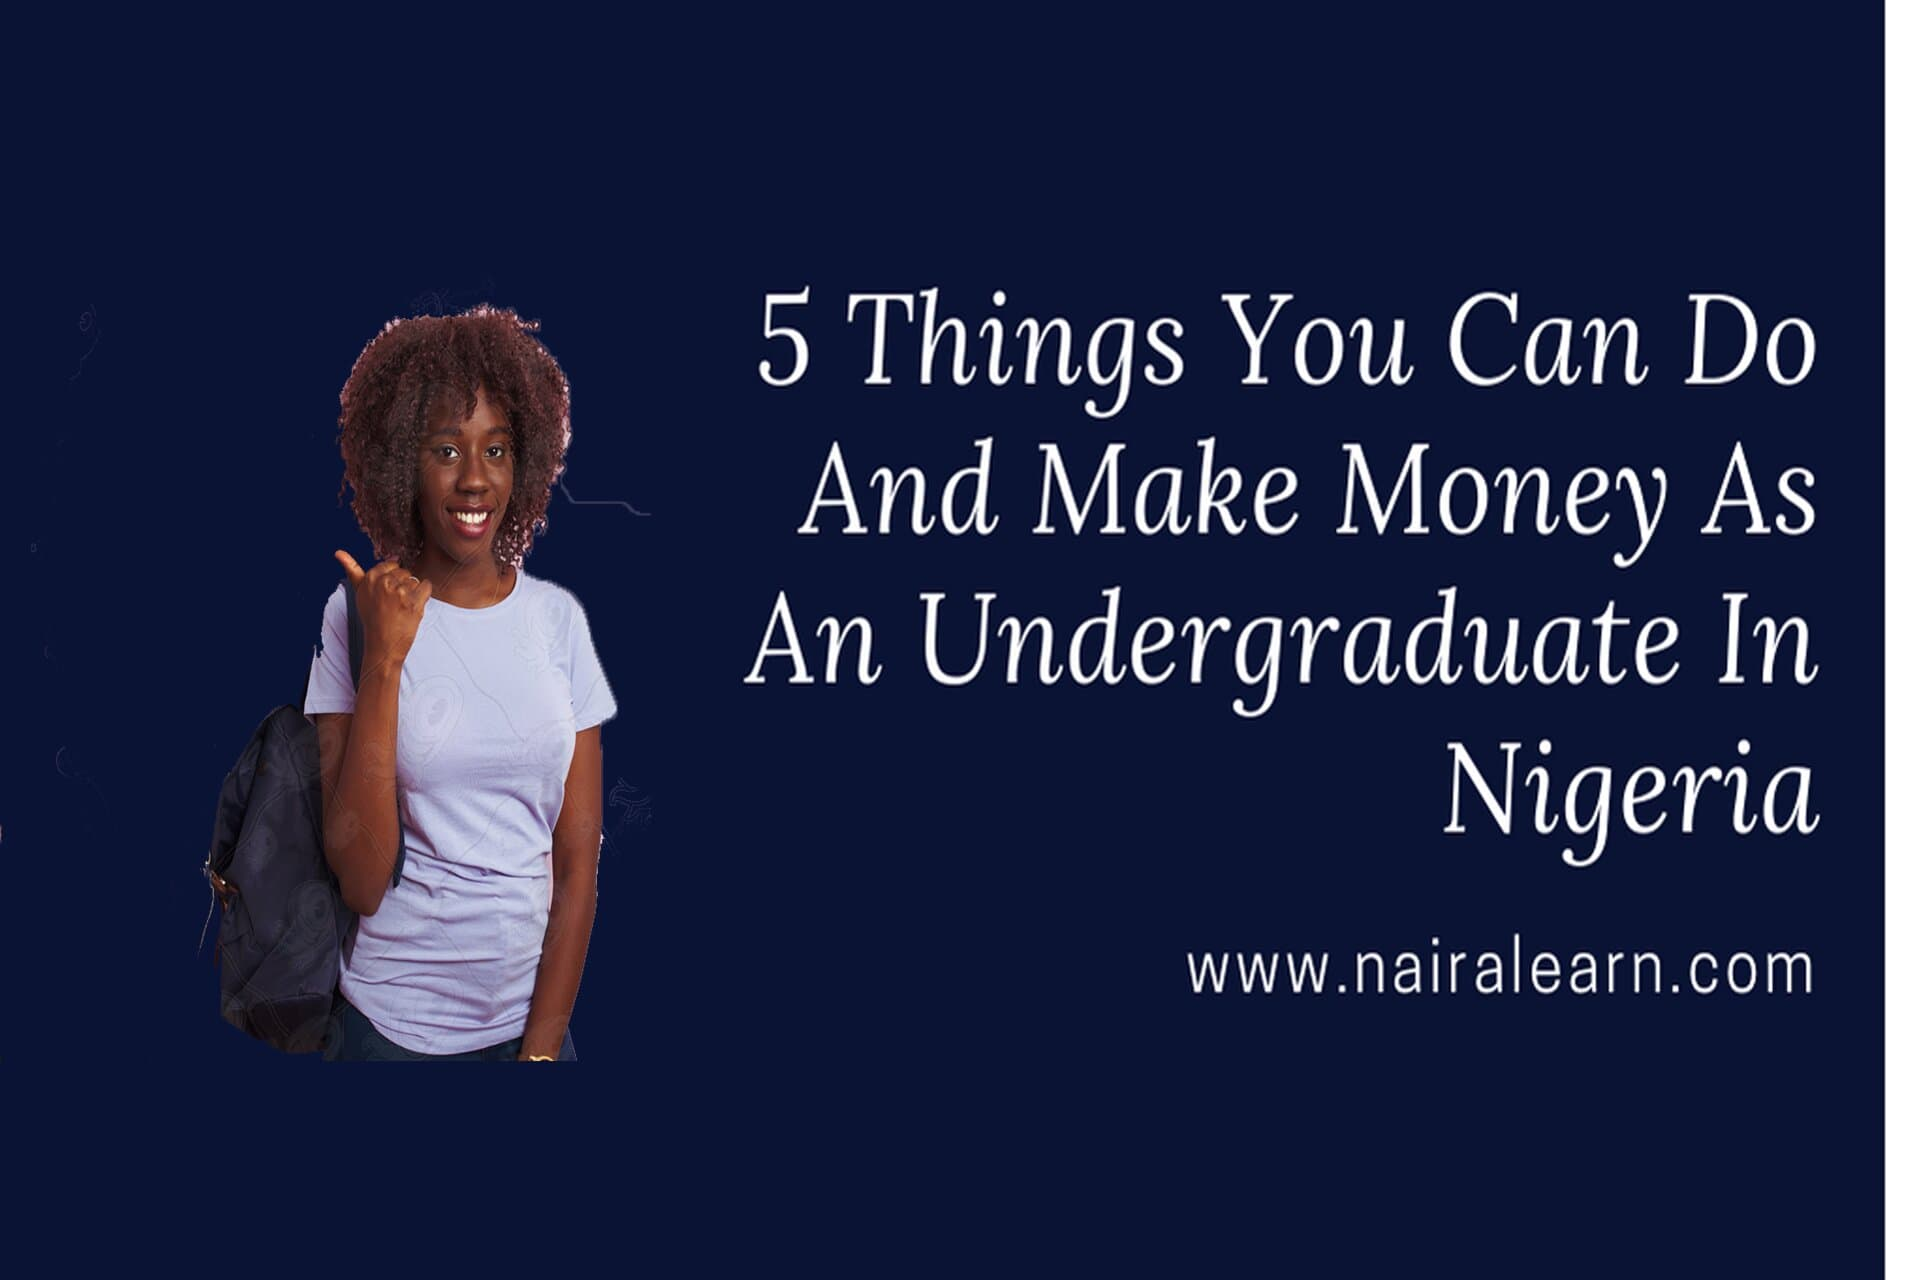 5 Things You Can Do And Make Money As An Undergraduate In Nigeria